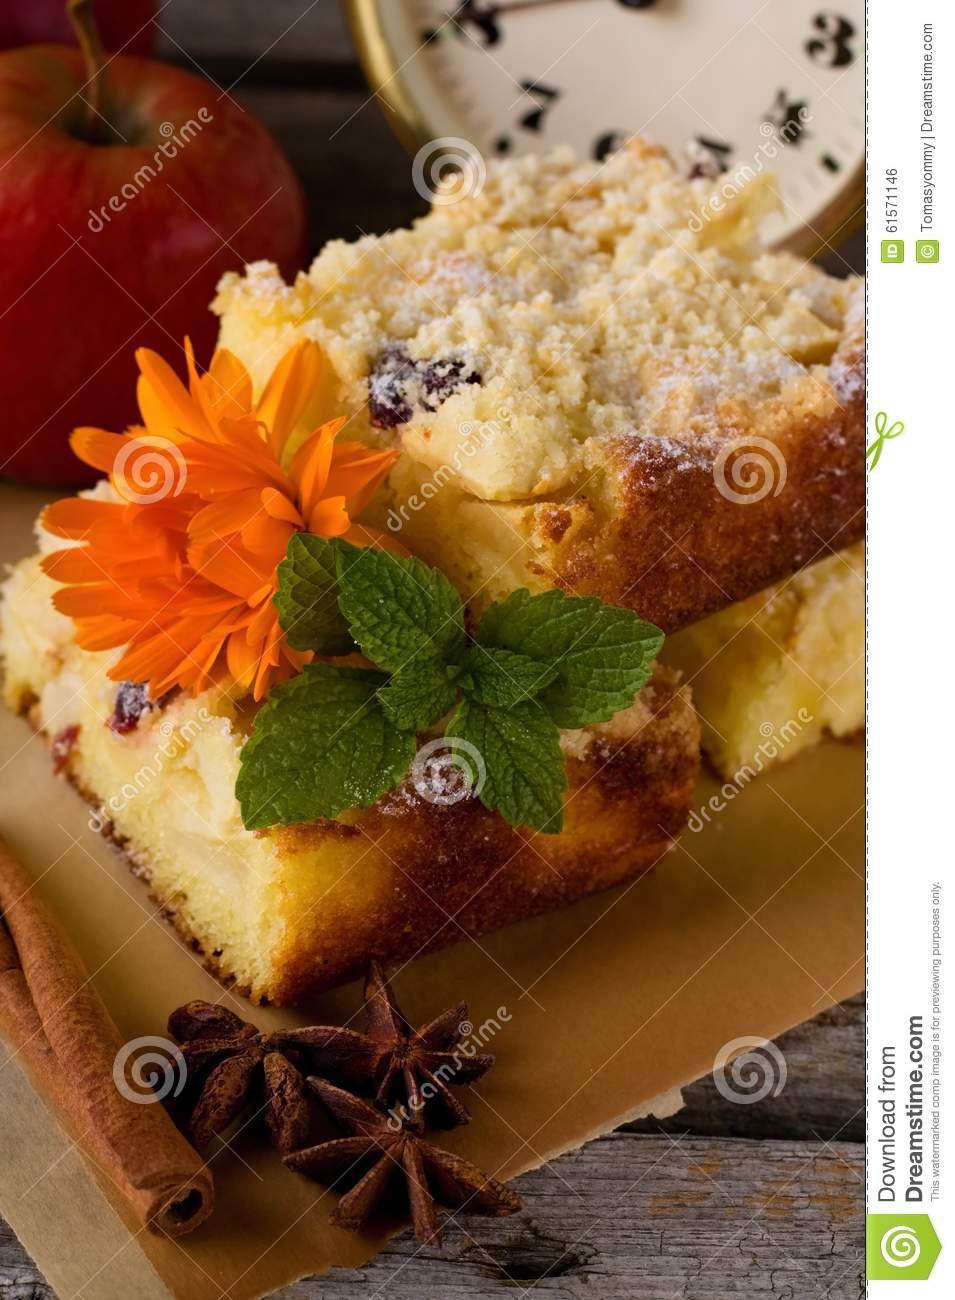 Apple Pie With Cinnamon And Star Anise Stock Photo - Image ...